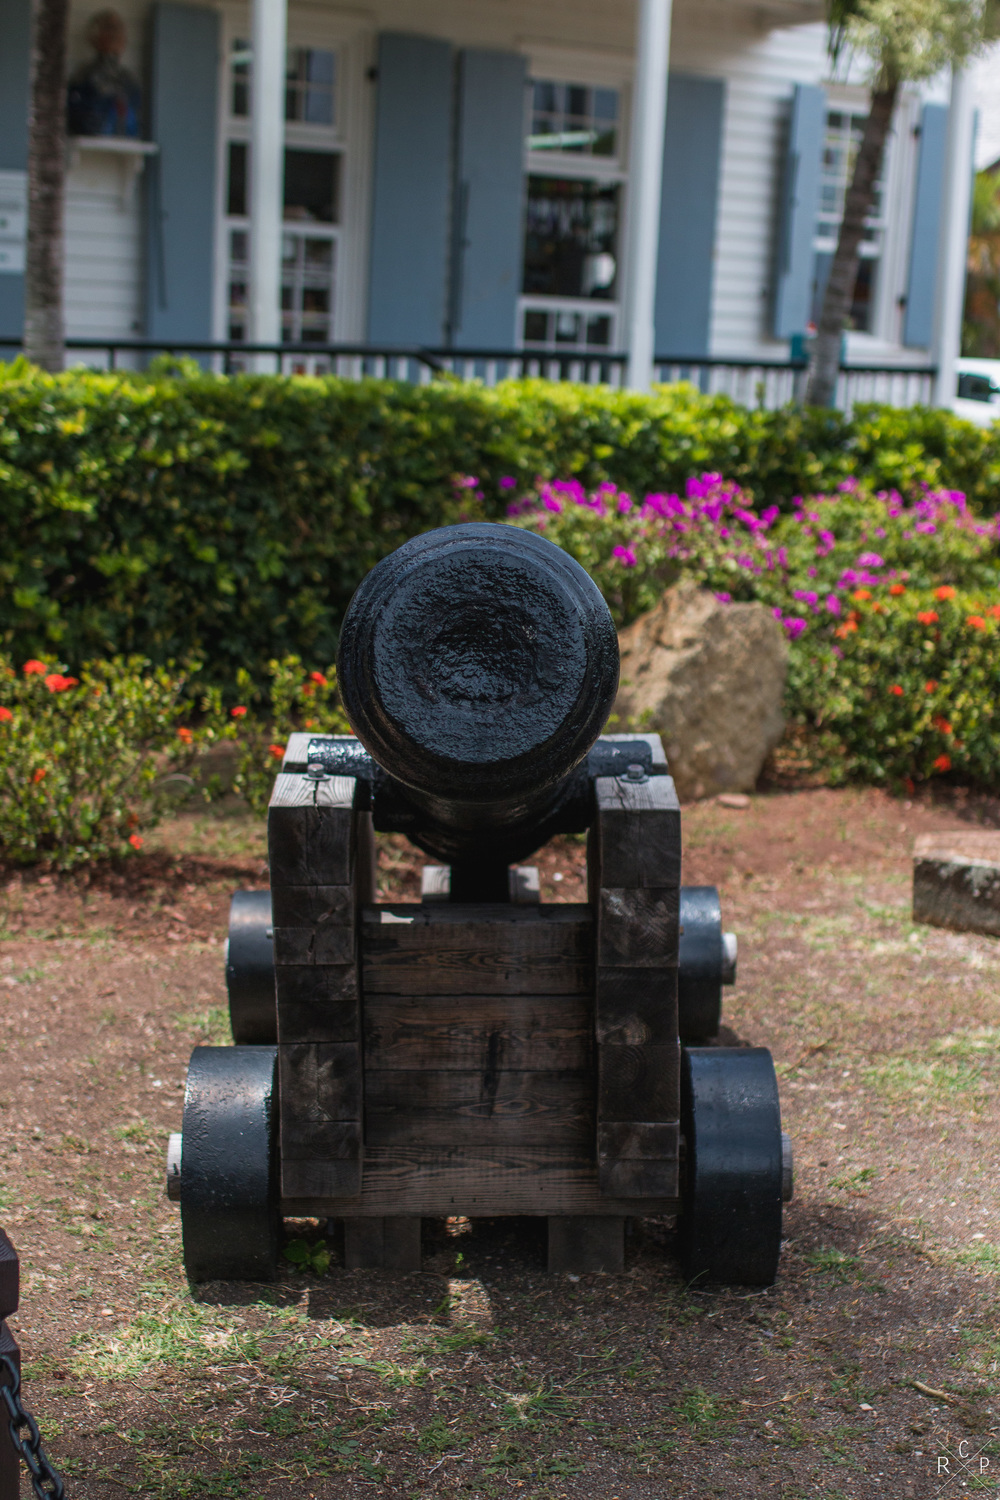 Cannon 1 - Nelson's Dockyard, English Harbour, Antigua - 01/04/2016